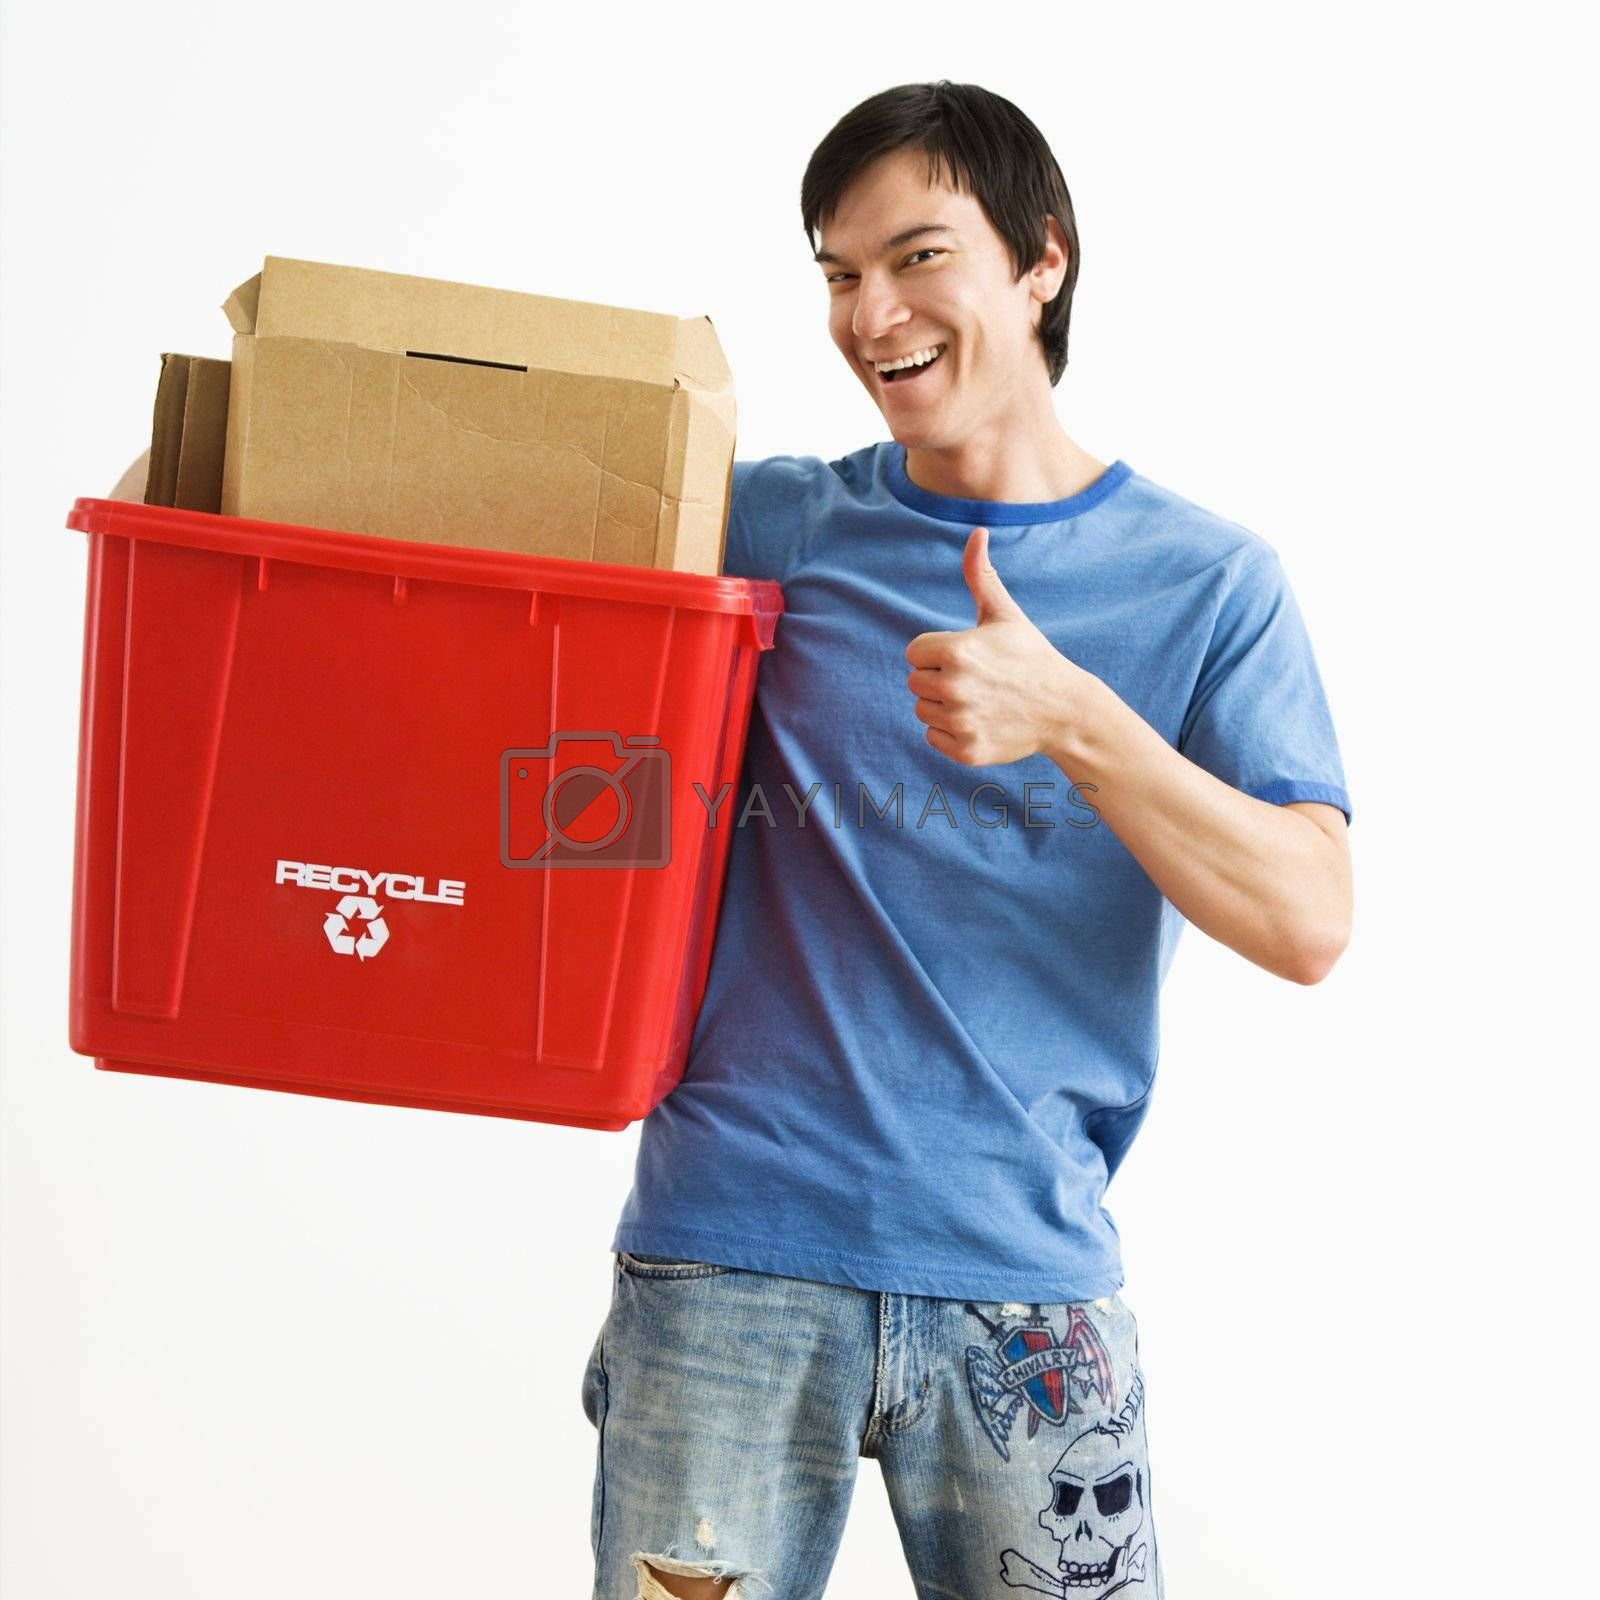 Portrait of smiling Asian young man standing holding recycling bin.